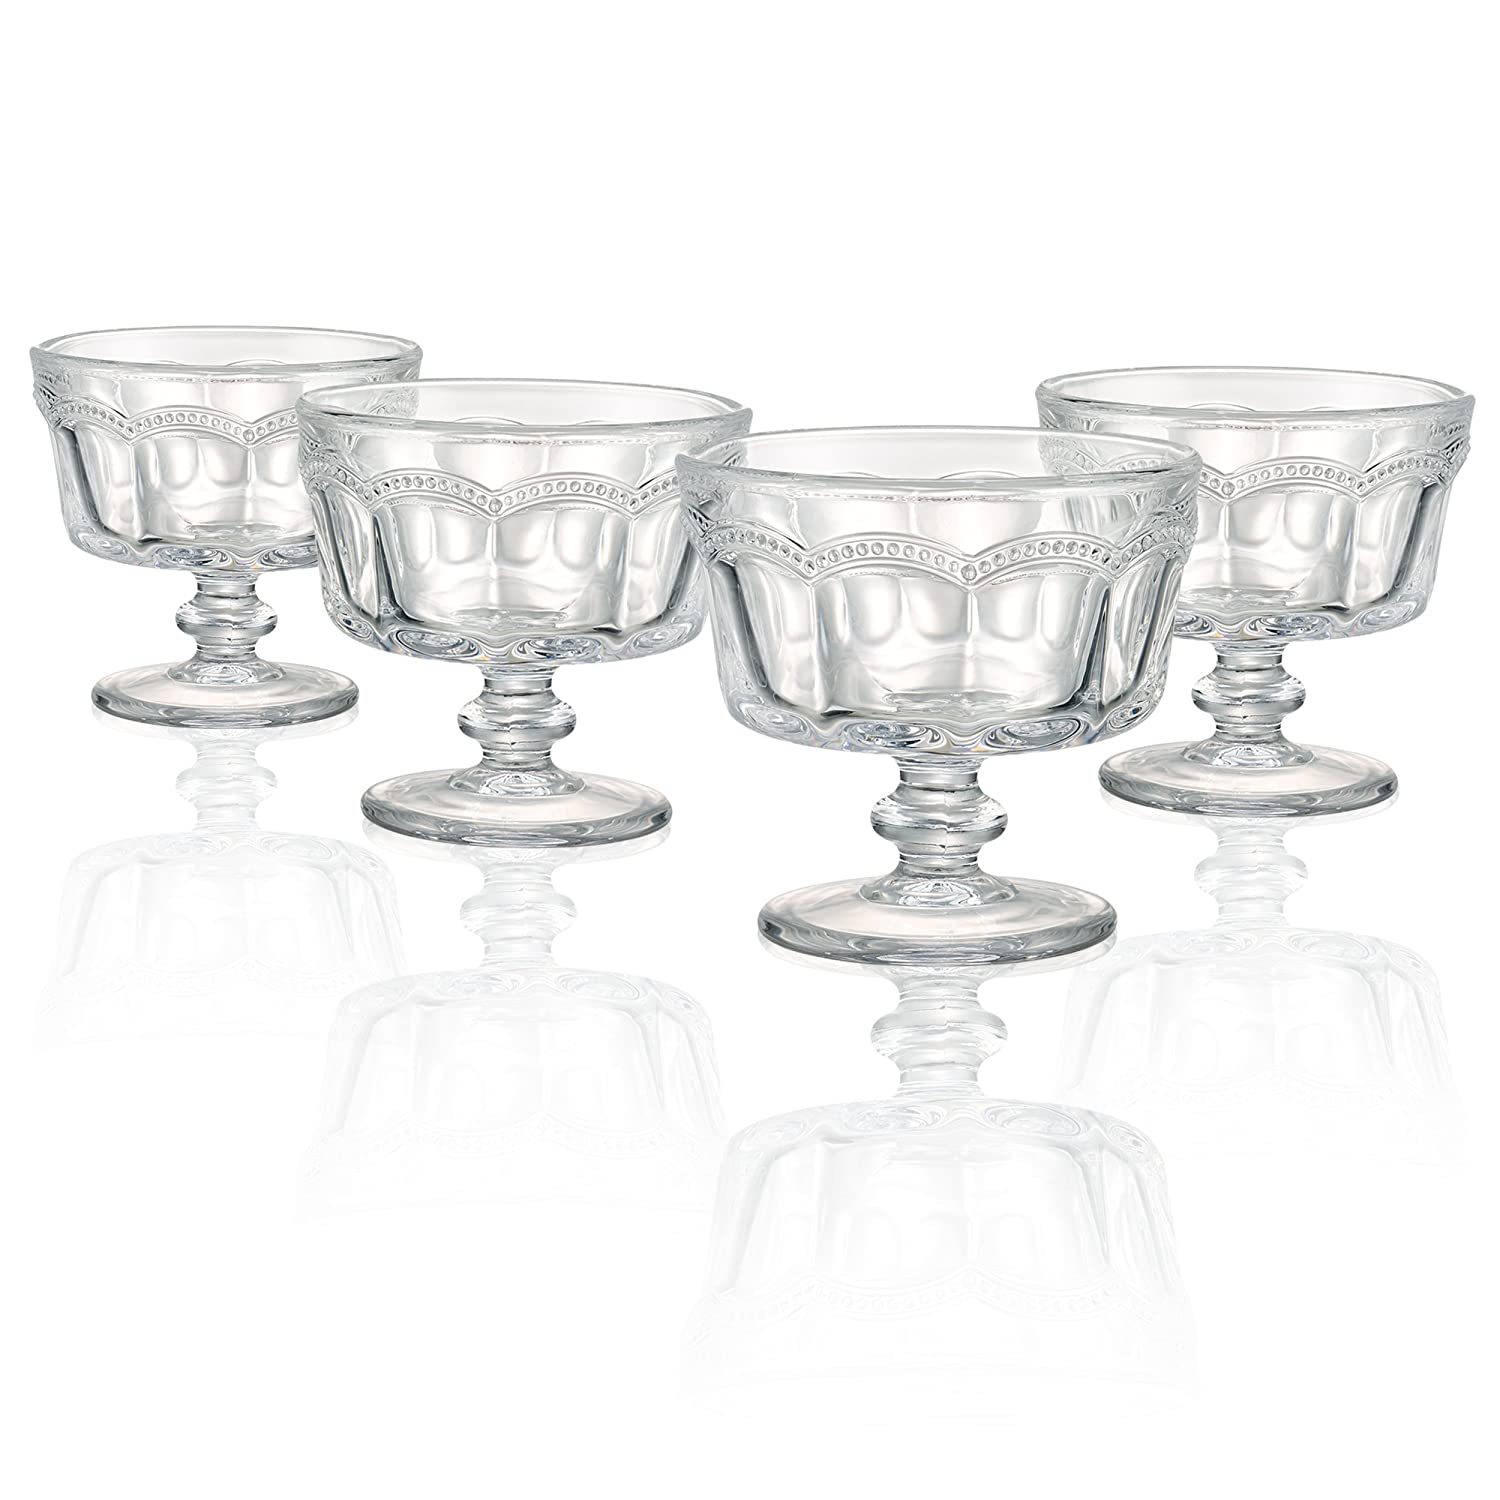 Artland Pearl Ridge Mini Trifle Bowls, Clear, Set of 4 30005